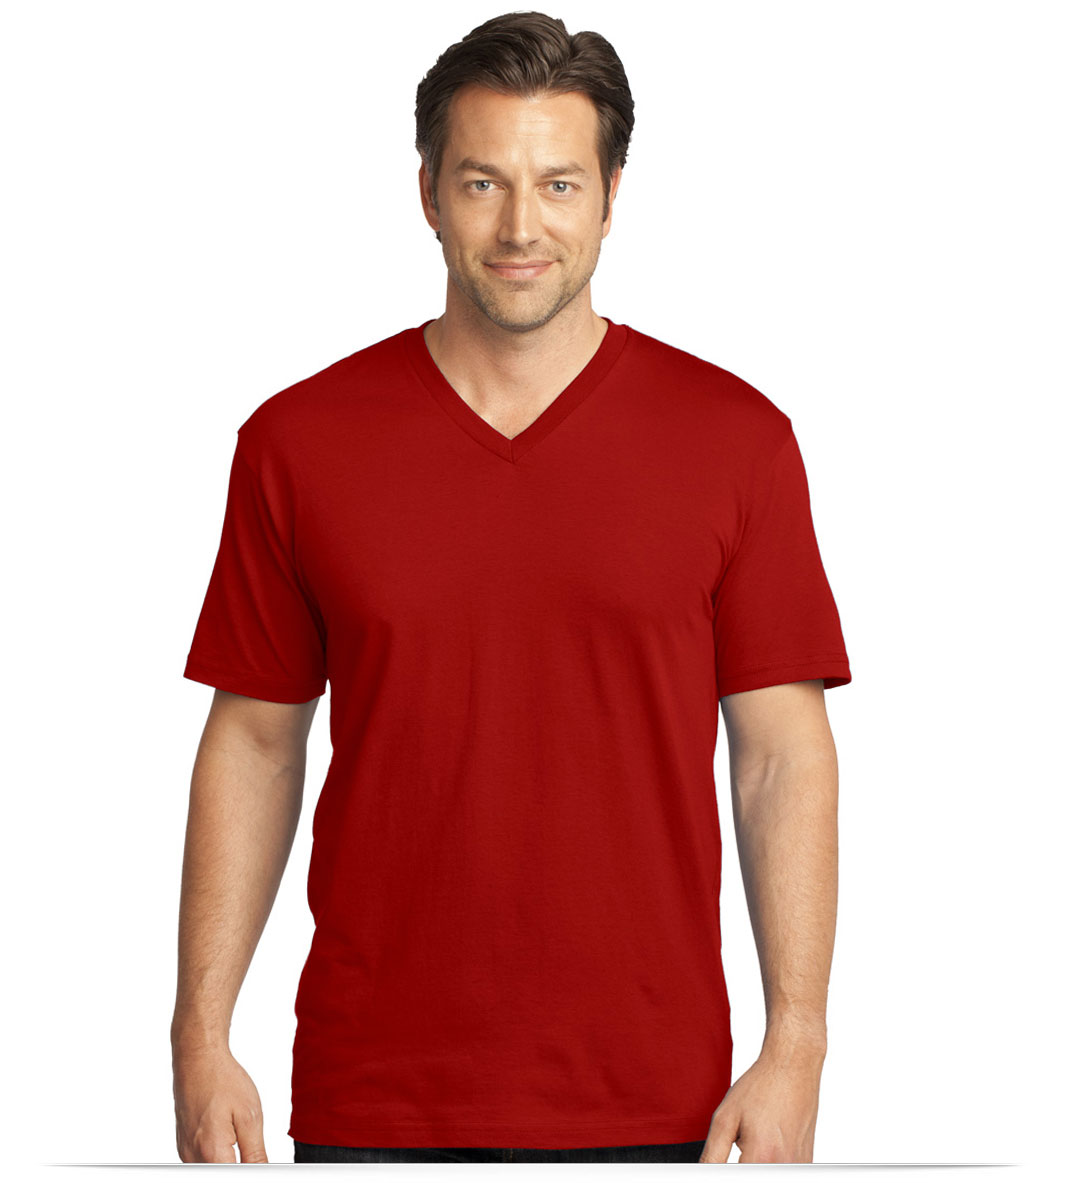 Embroidered District Made Men's Perfect Weight V-Neck Tee